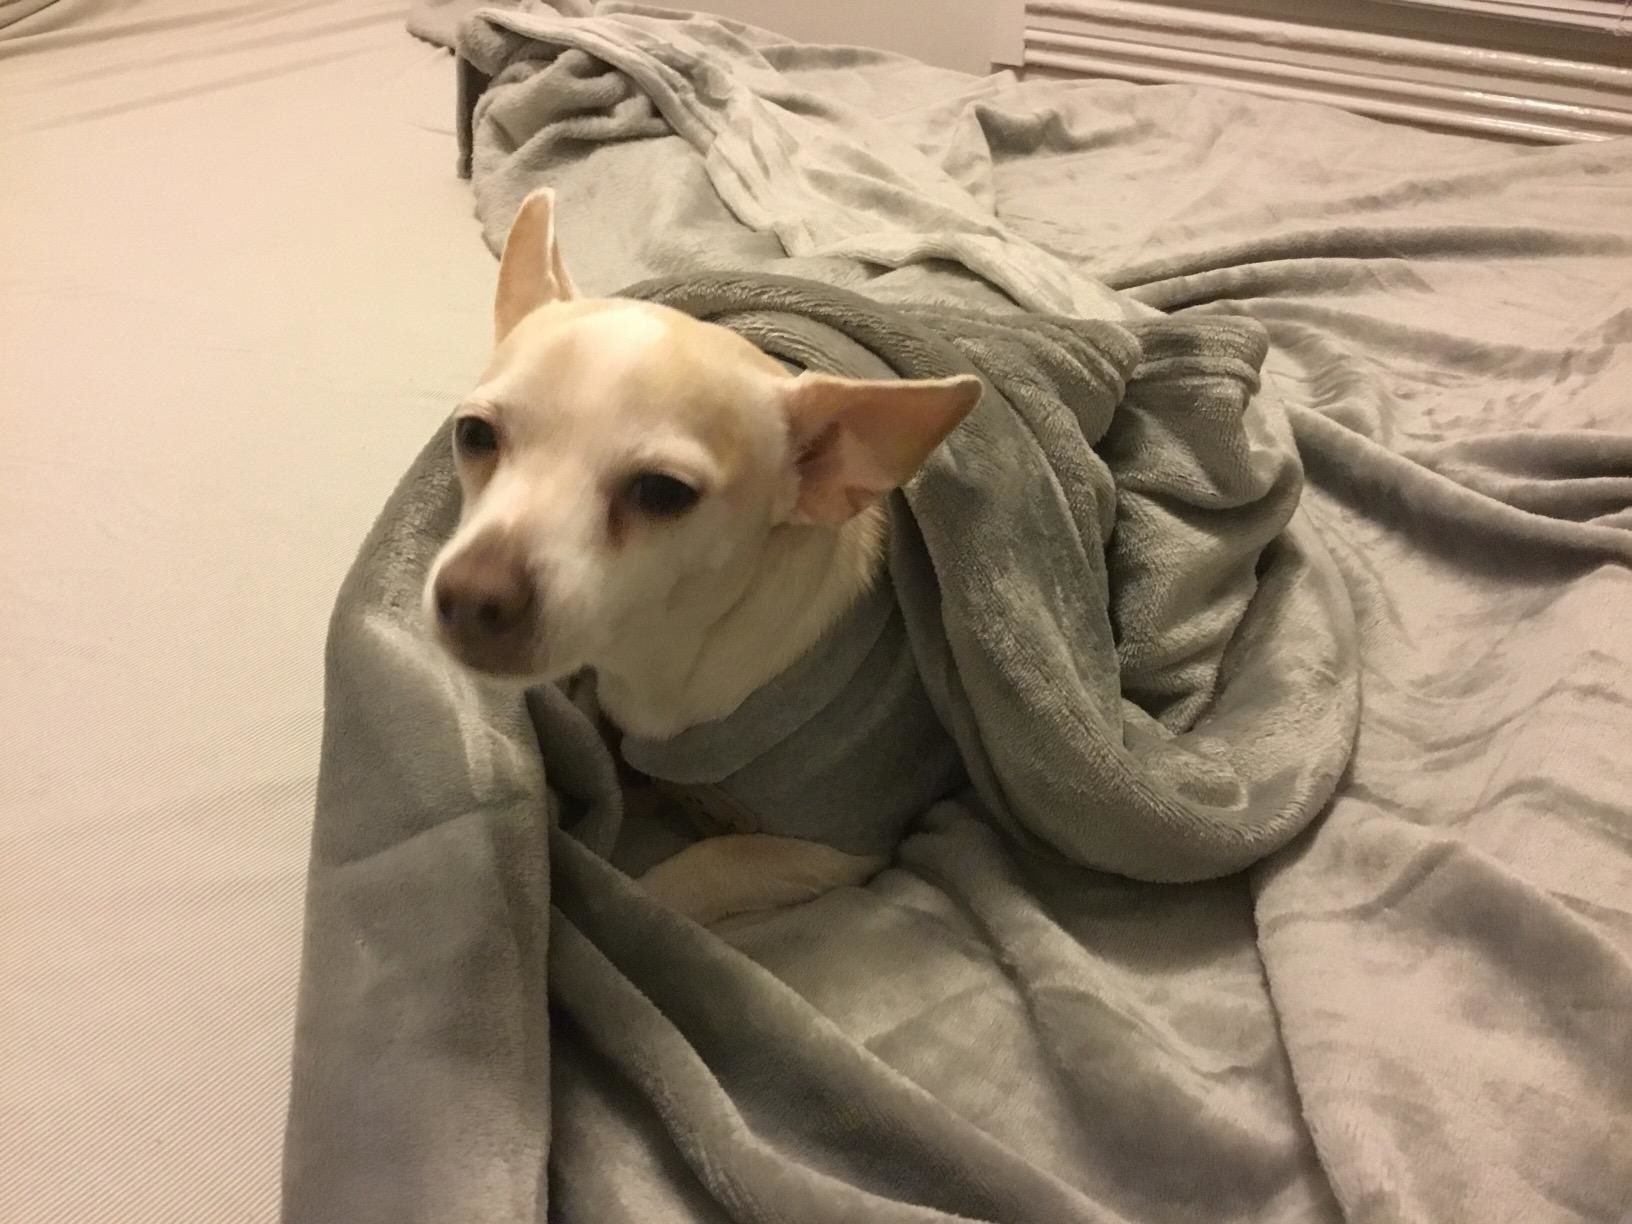 A small dog wrapped up in a grey fleece blanket.